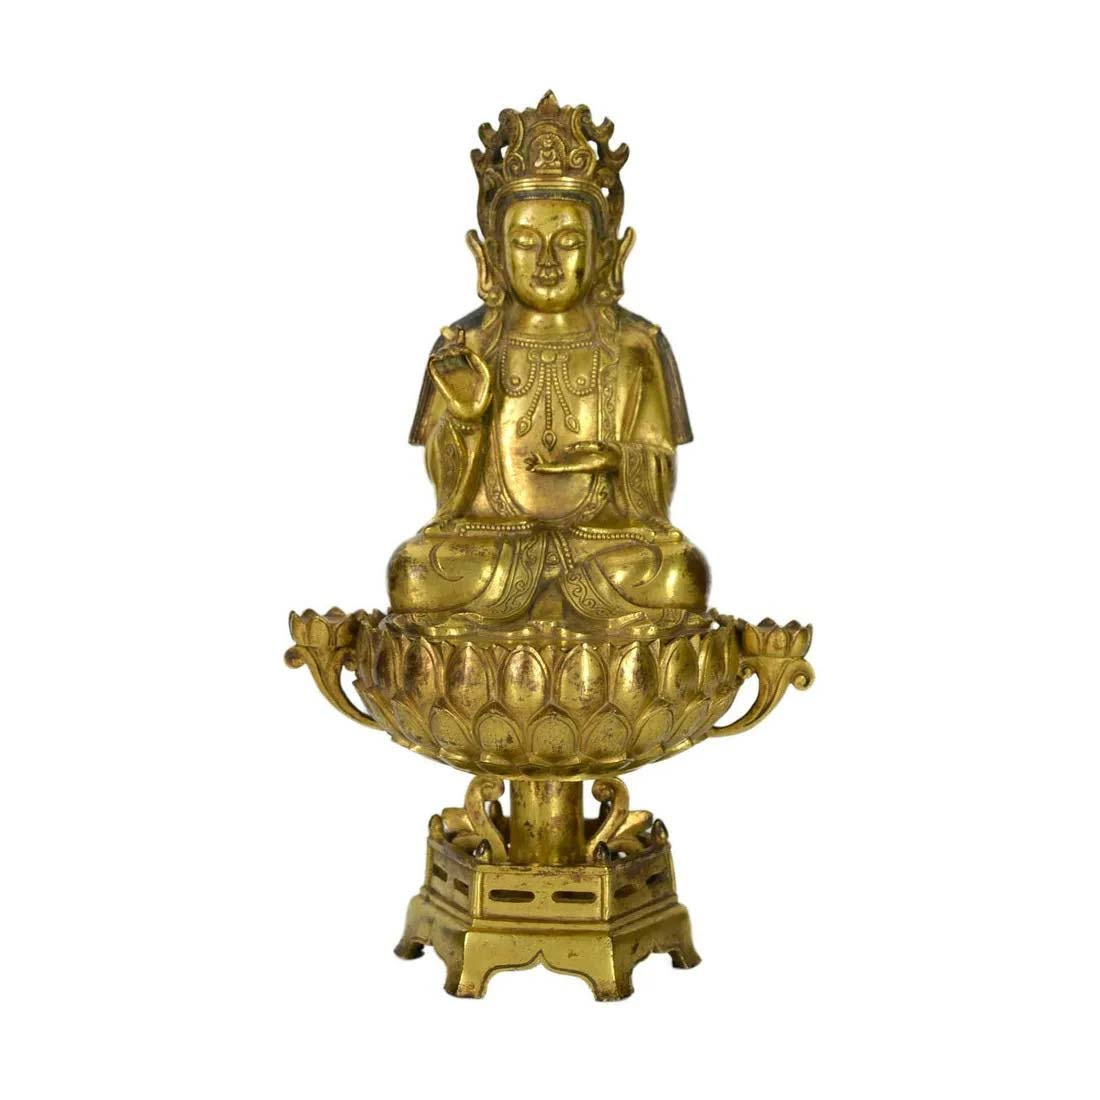 Gilt bronze seated figure of Guanyin, Qing Dynasty, $12,000-$20,000. Image courtesy Gianguan Auctions